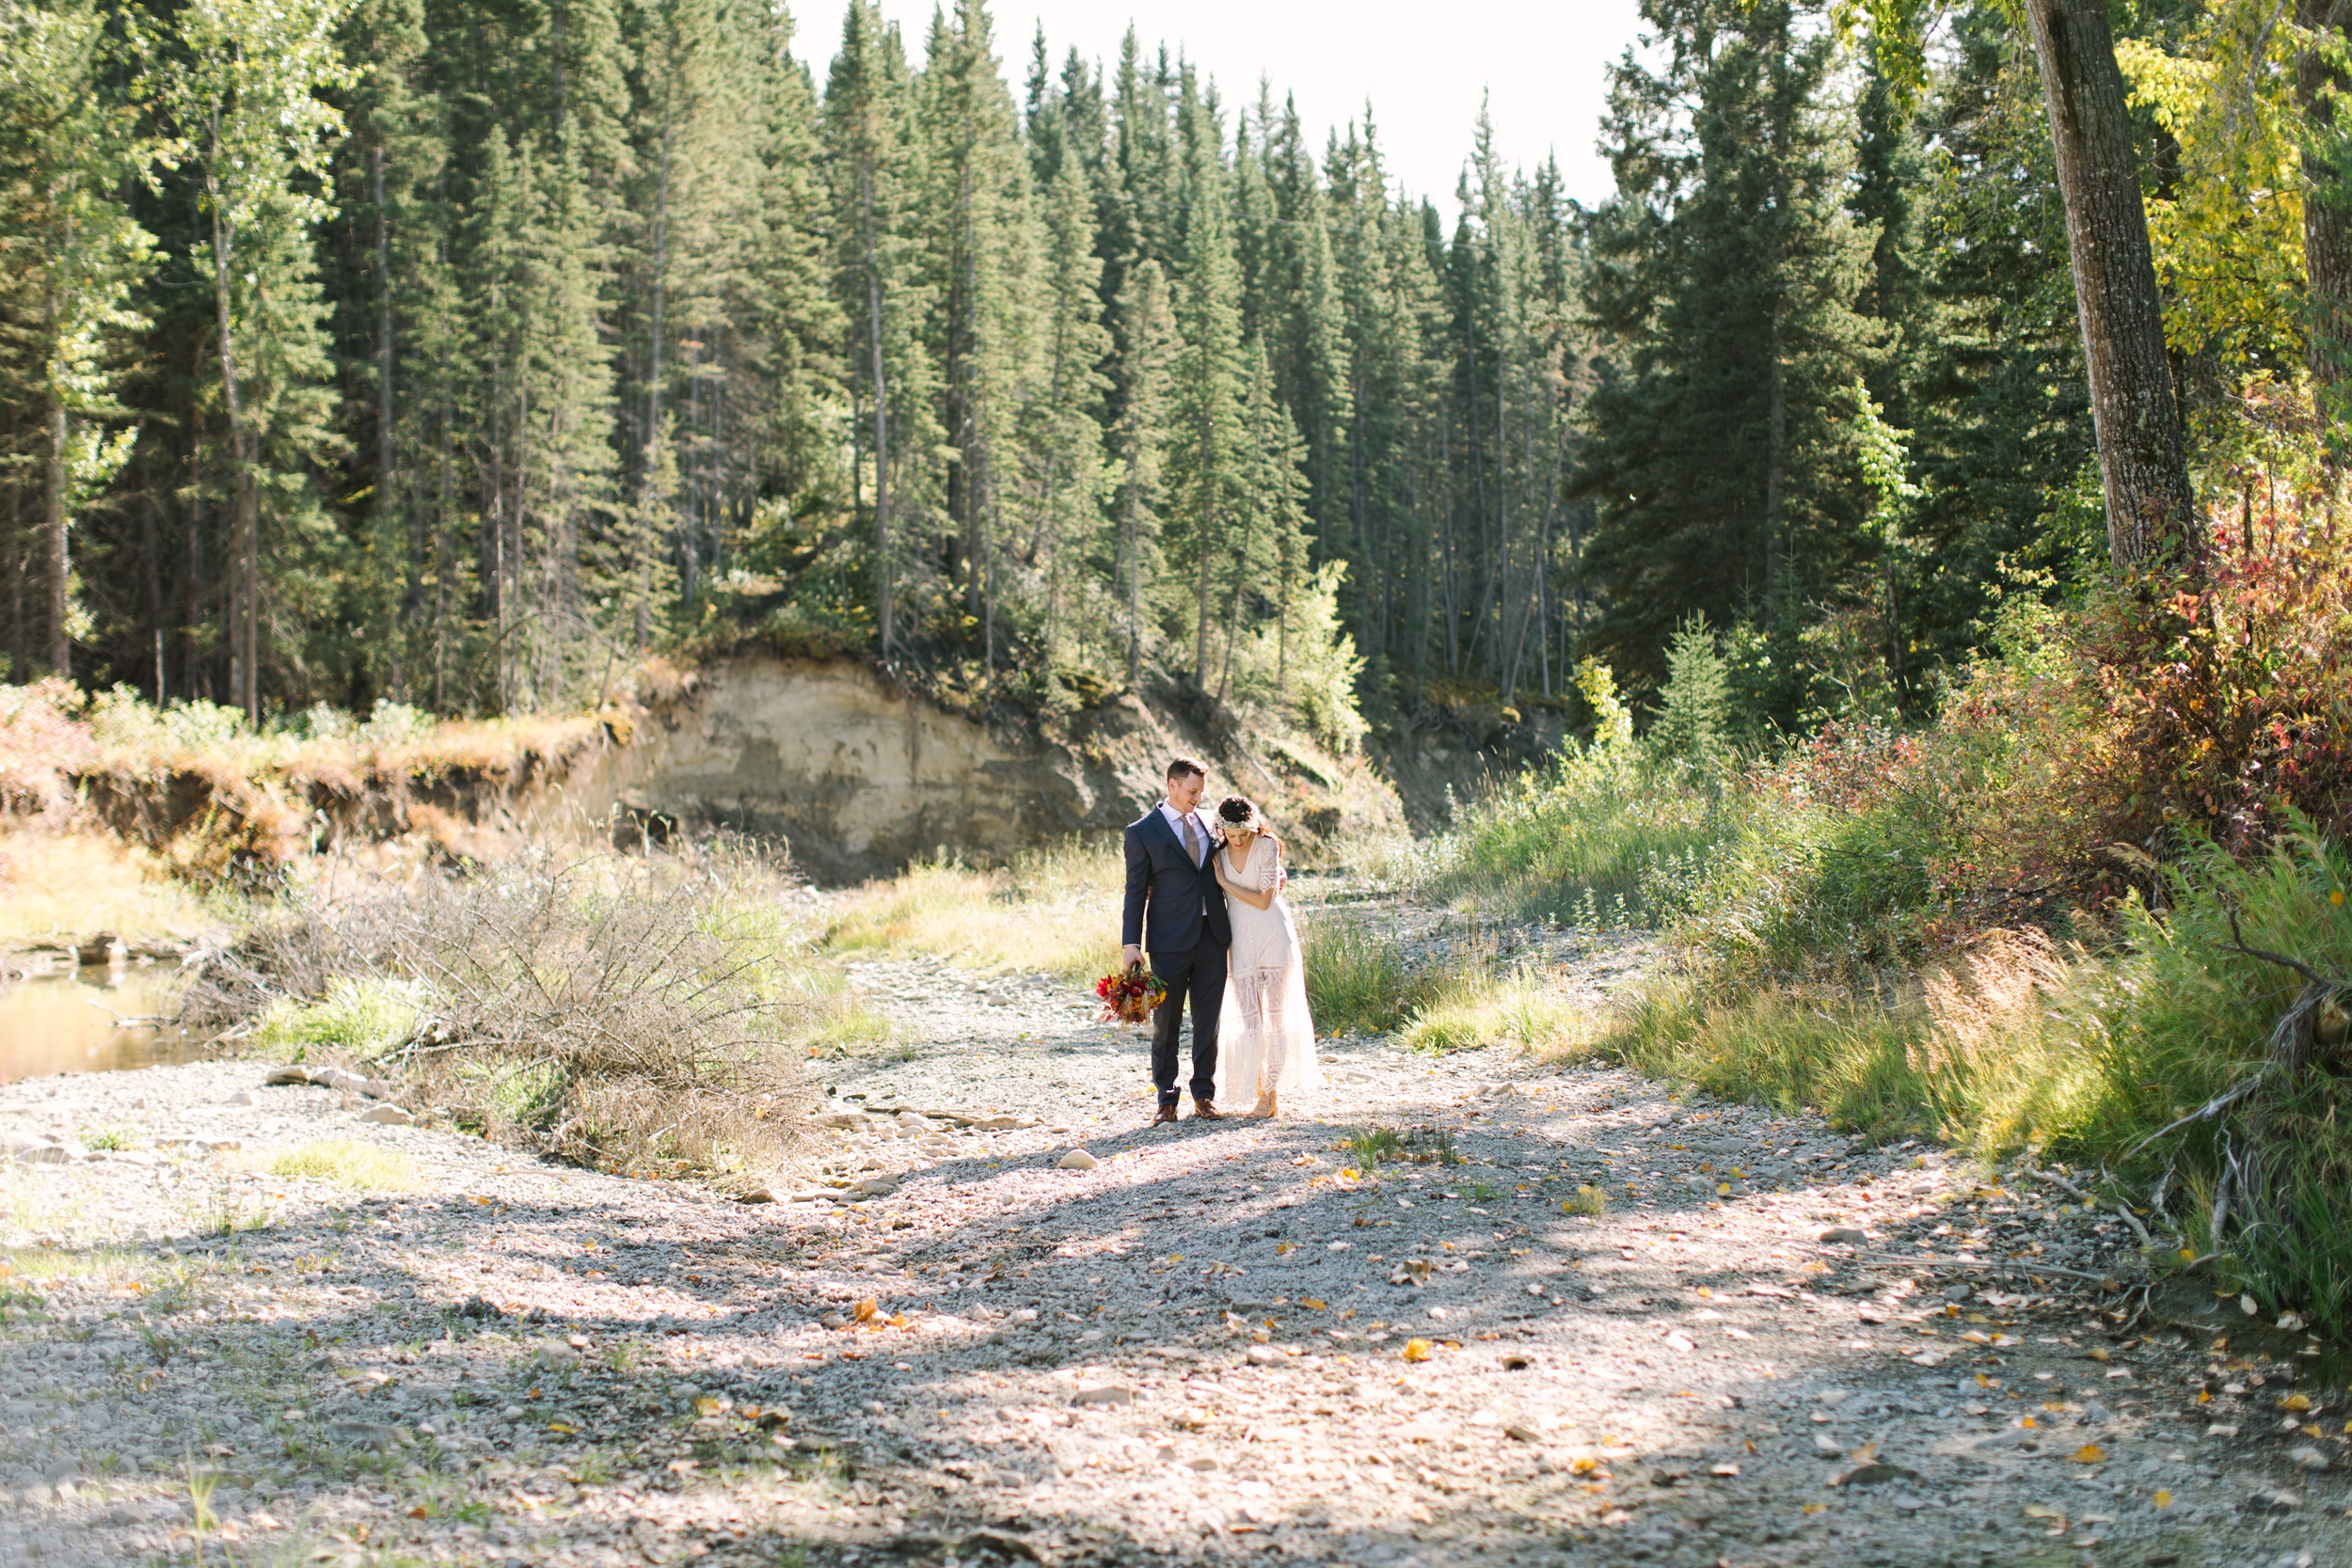 Calgary_Intimate_Backyard_Wedding0023.jpg